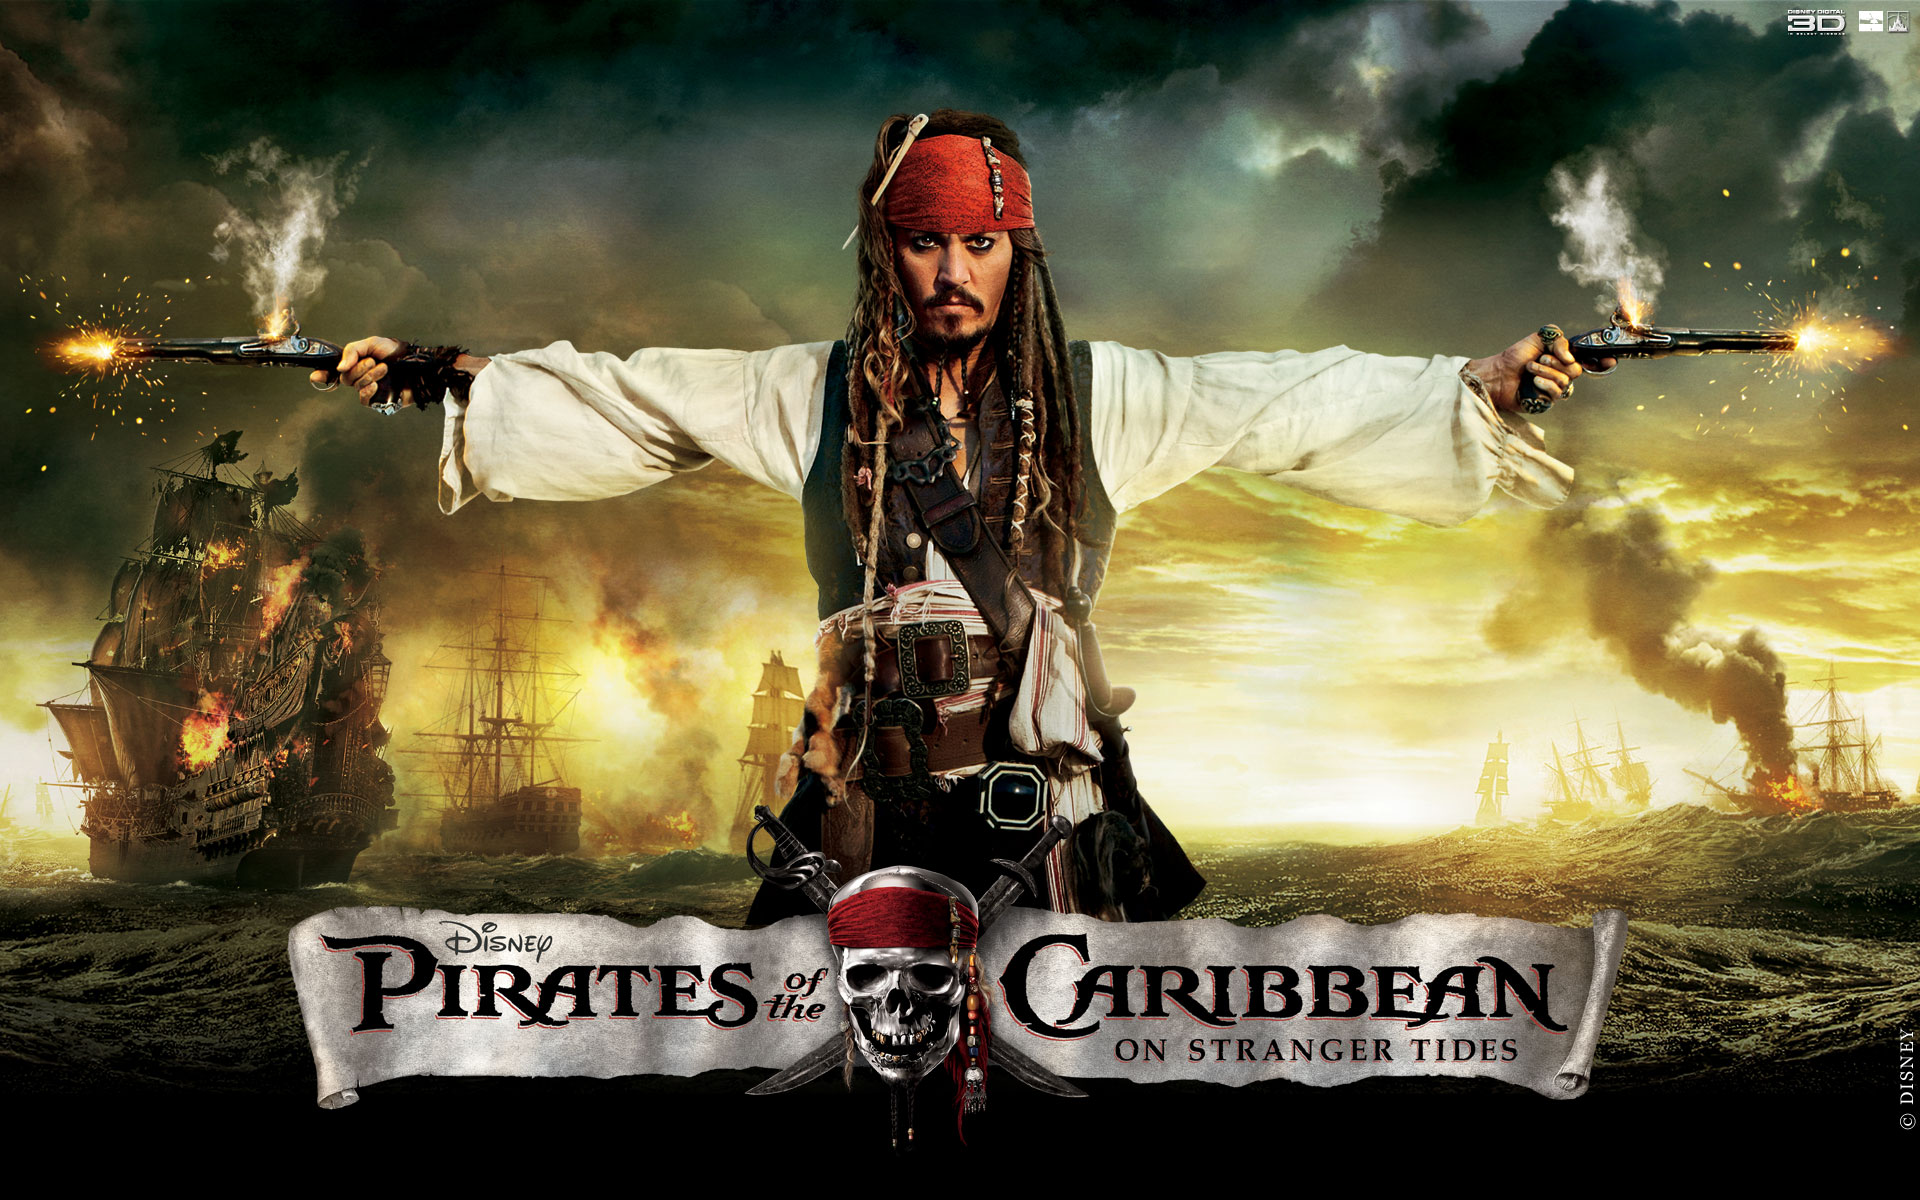 Pirates Of The Caribbean On Stranger Tides wallpaper   405920 1920x1200